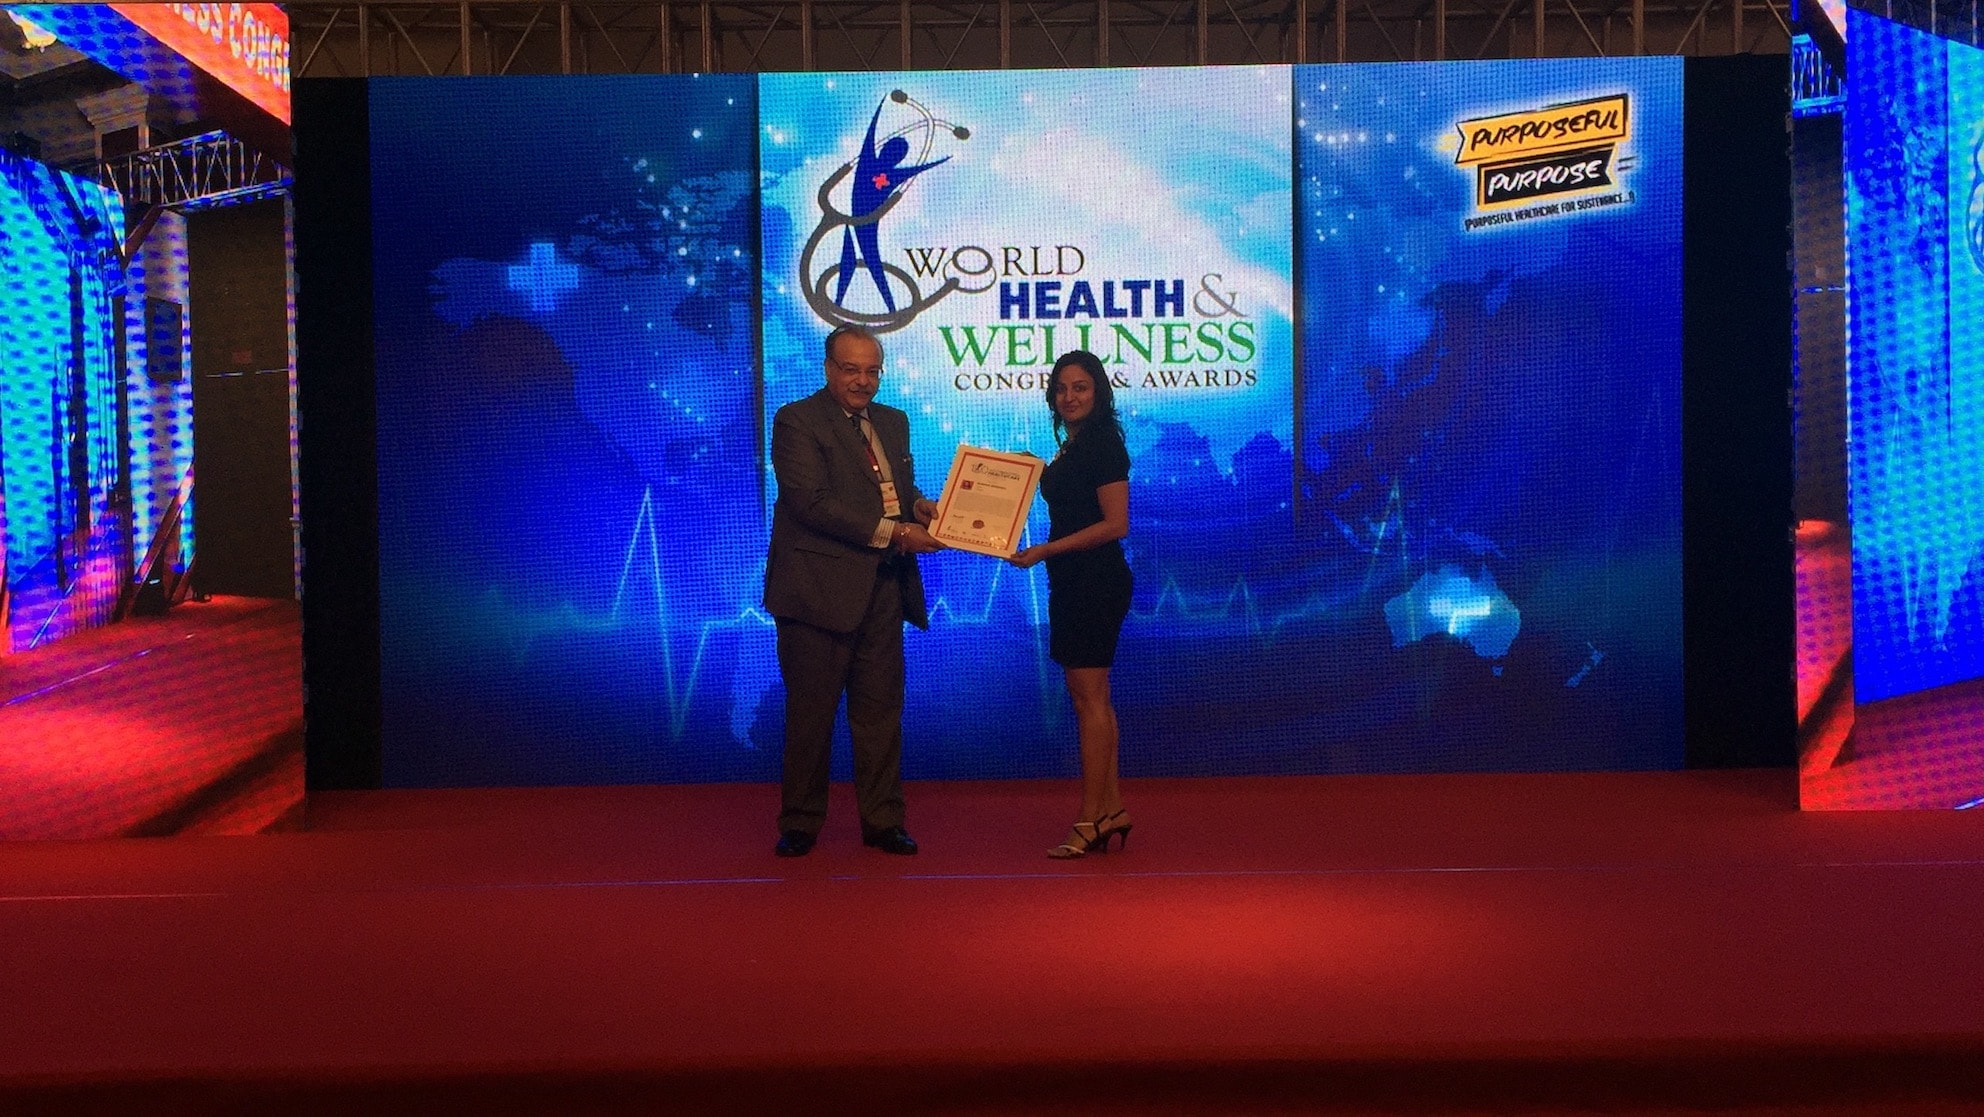 Most Impactful healthcare award